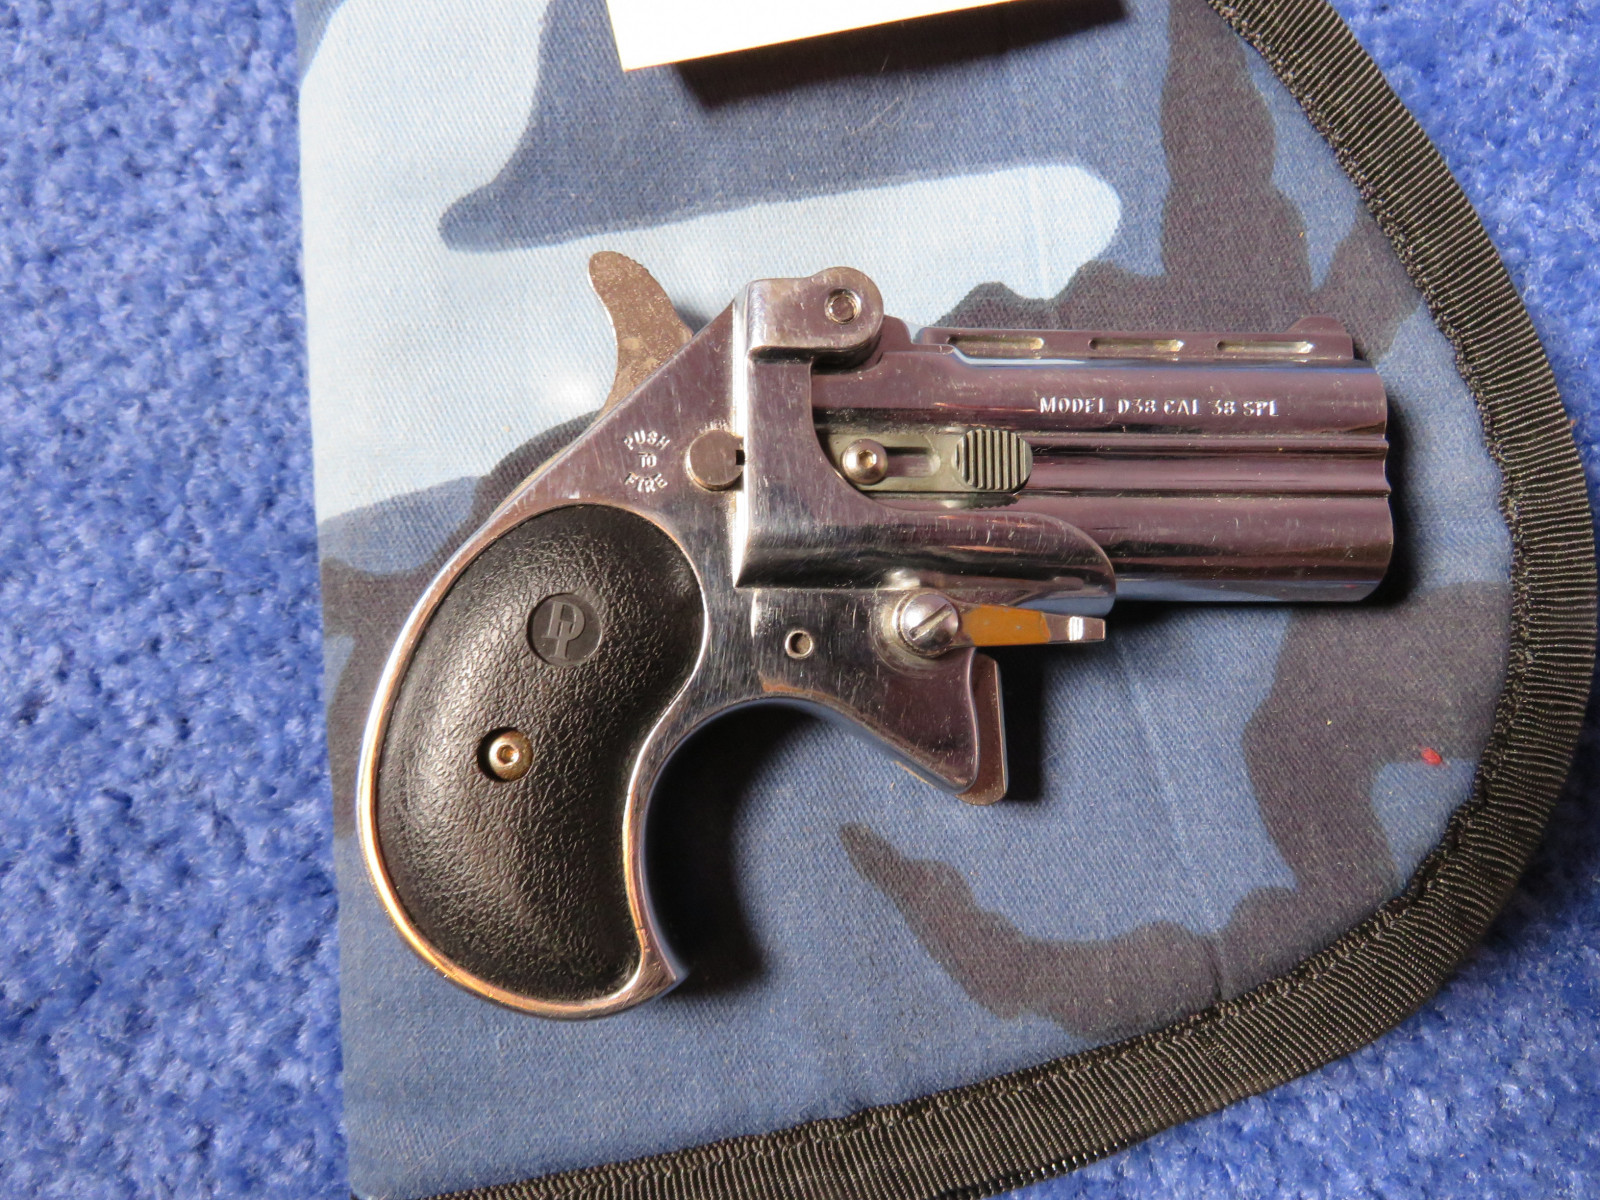 Davis Industries Model D38  .38 Special Handgun - Image 2